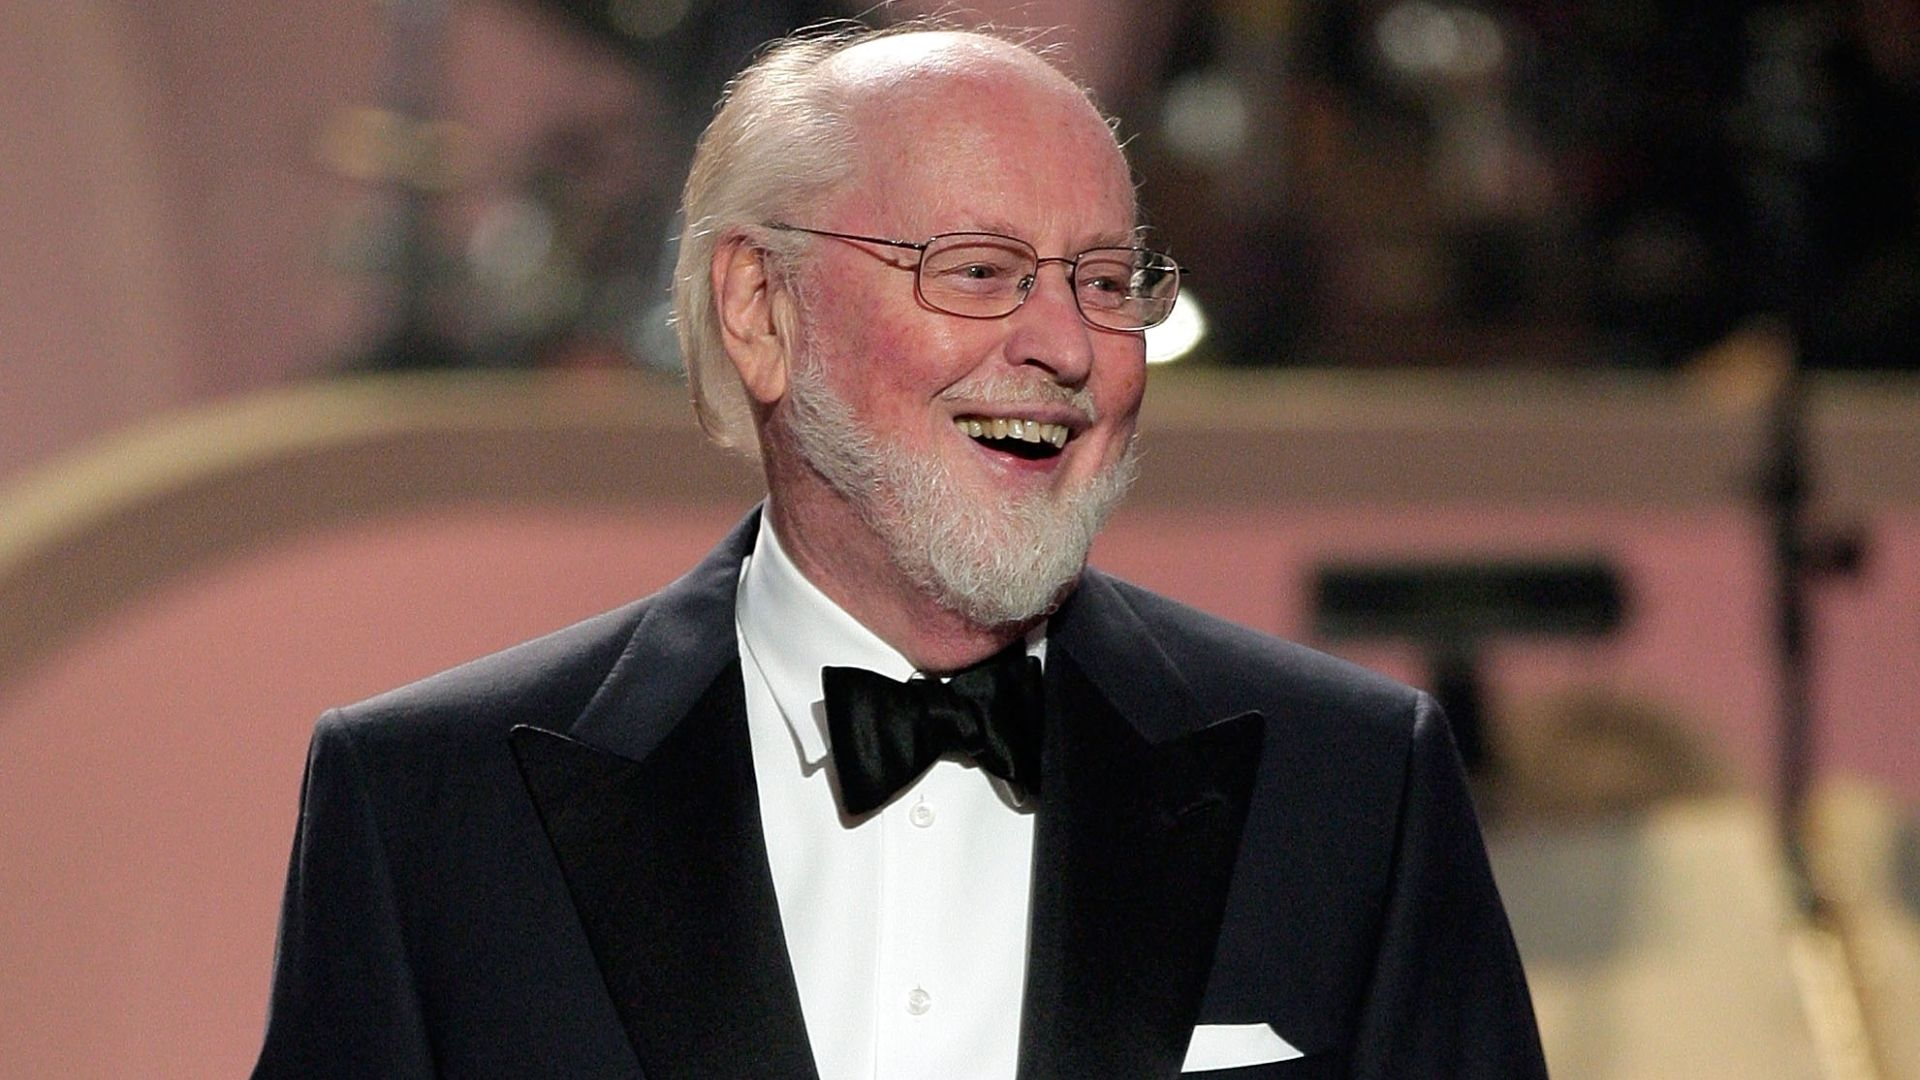 John Williams net worth